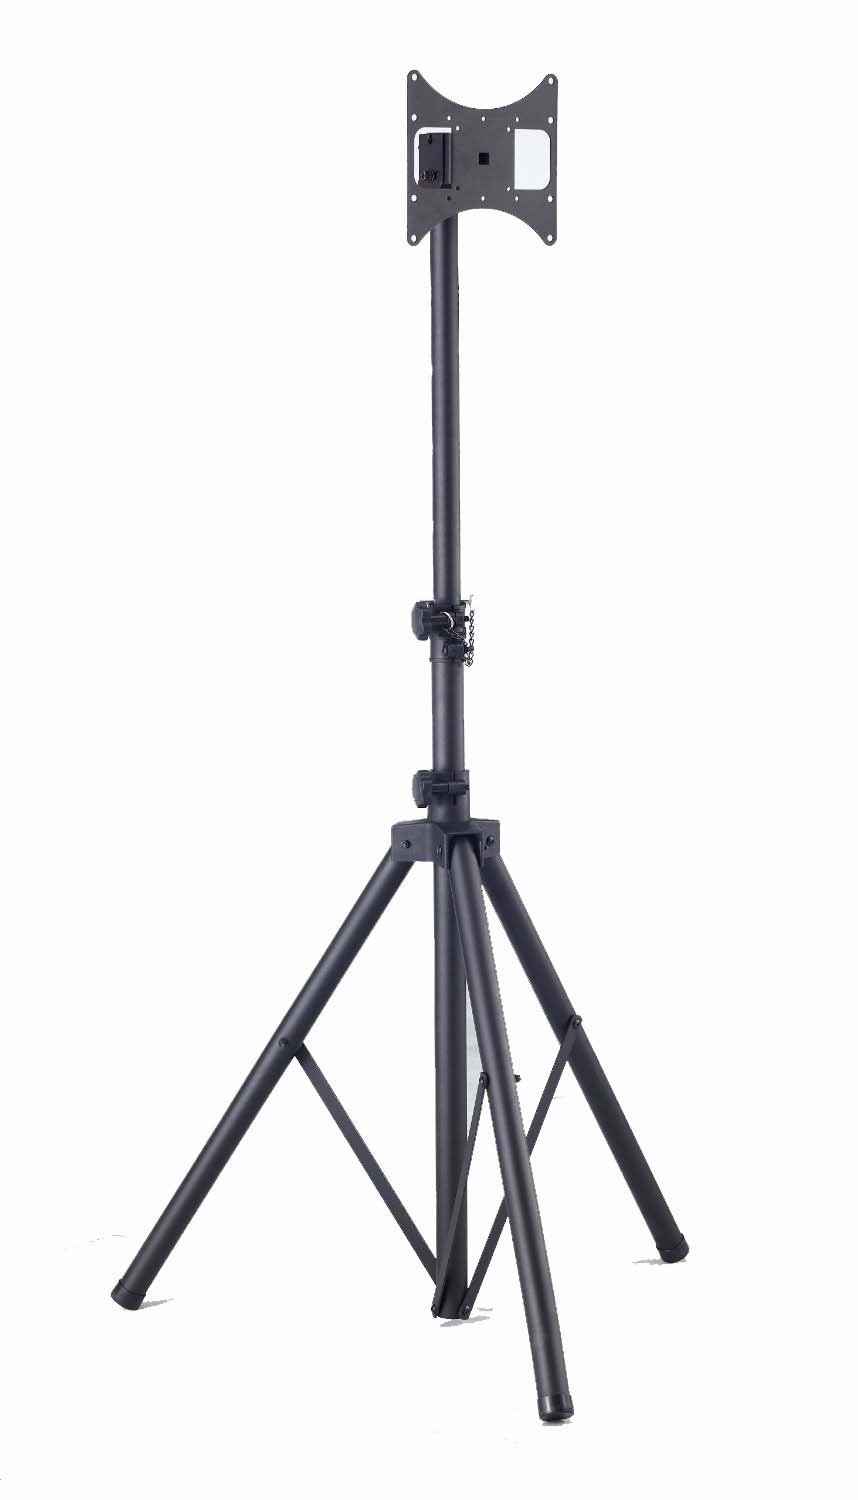 """Elitech Steel Portable Plasma or LCD TV Tripod Stand for up to 37"""" Flat Panel TV, Height Adjustable. Max Stand Height 70"""""""